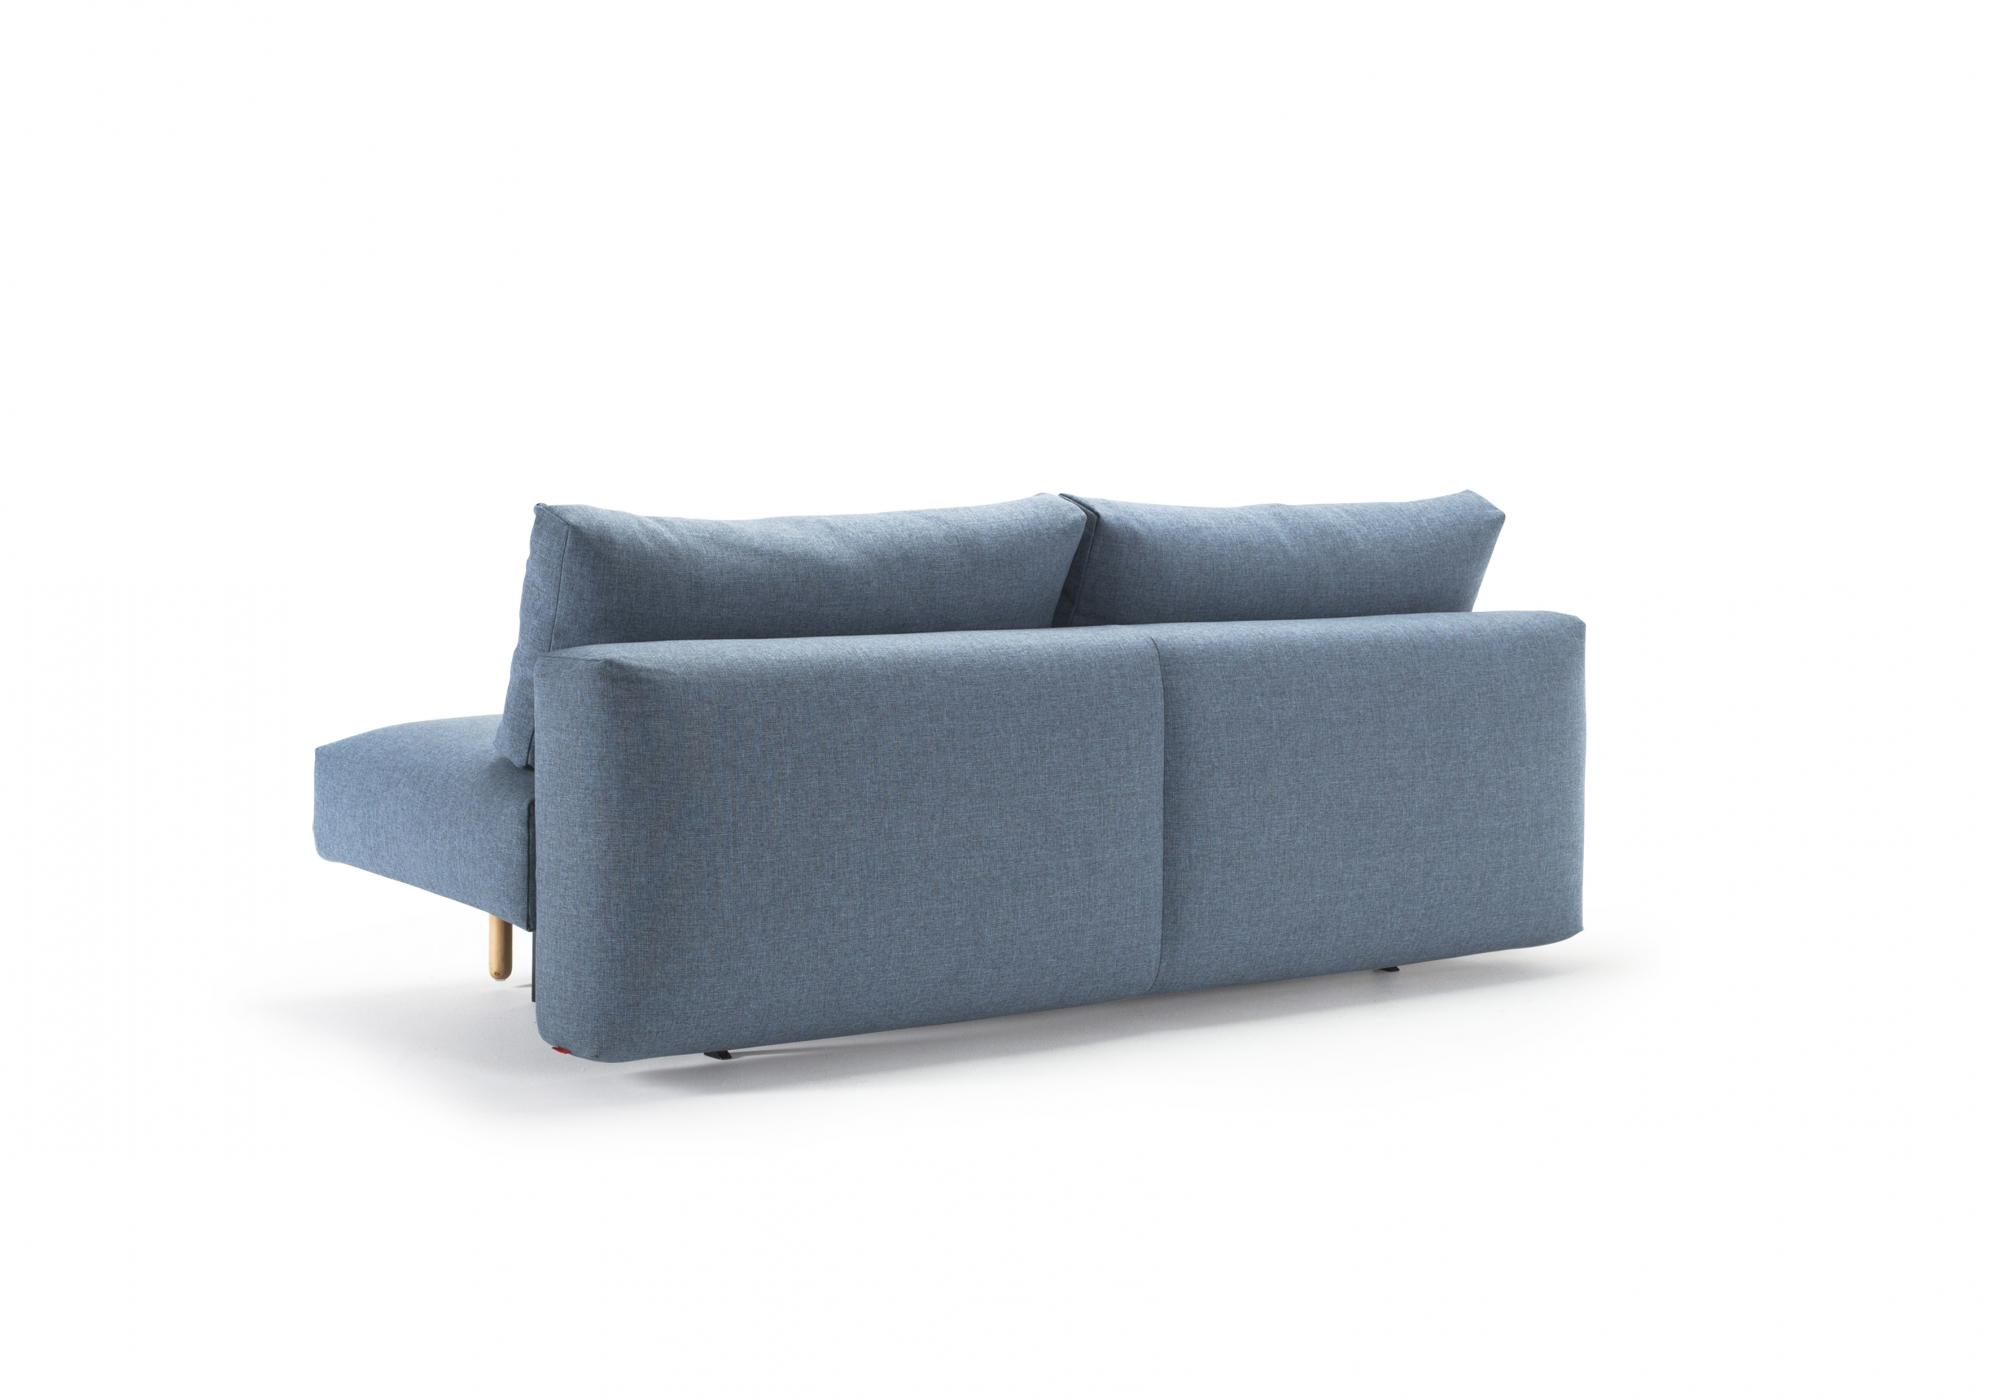 Bettsofa Element Frode Without Arms Sofa Bed Innovation Sofas